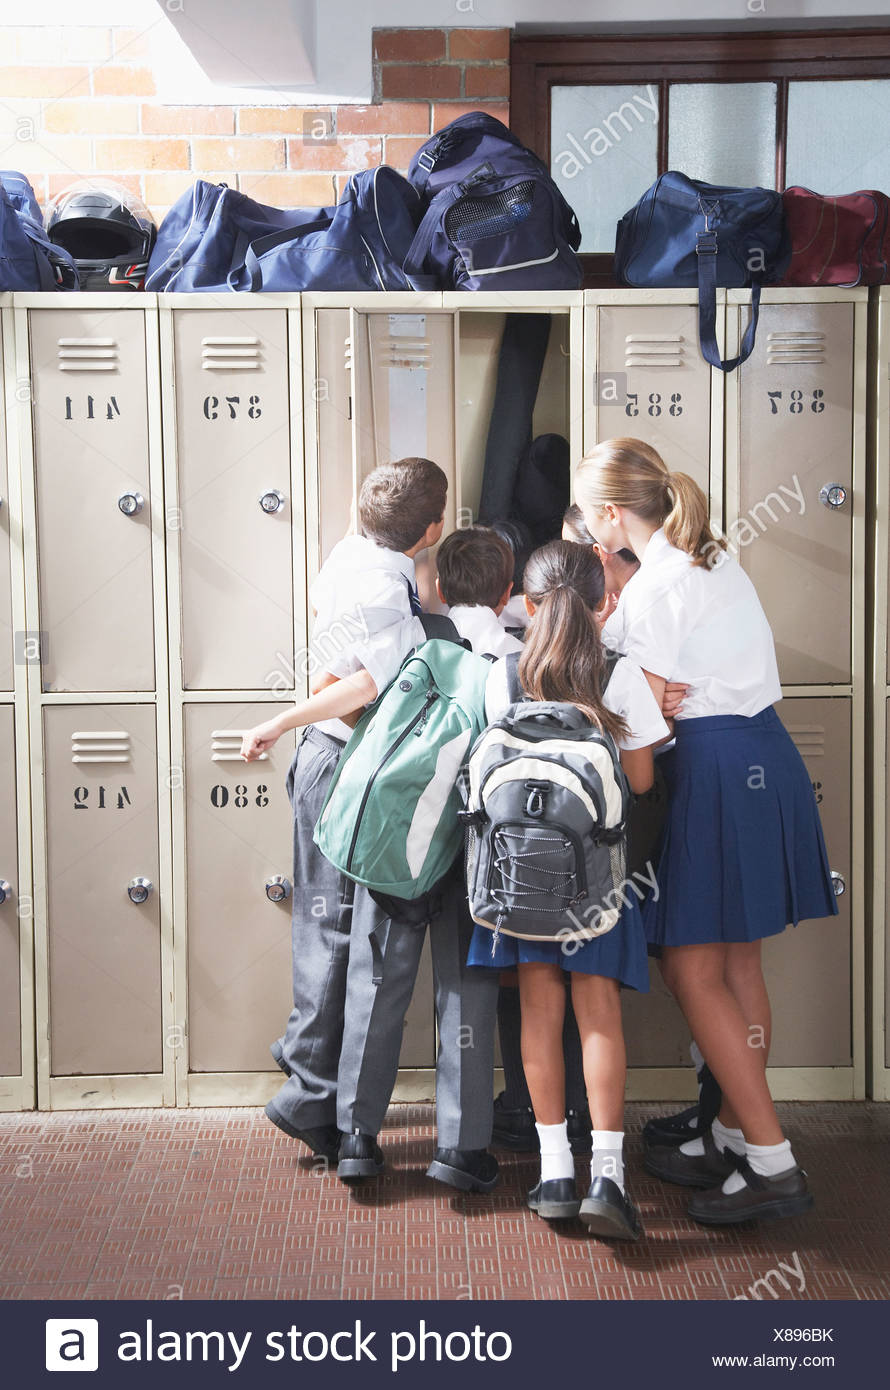 Students in the school hallway looking in a locker - Stock Image